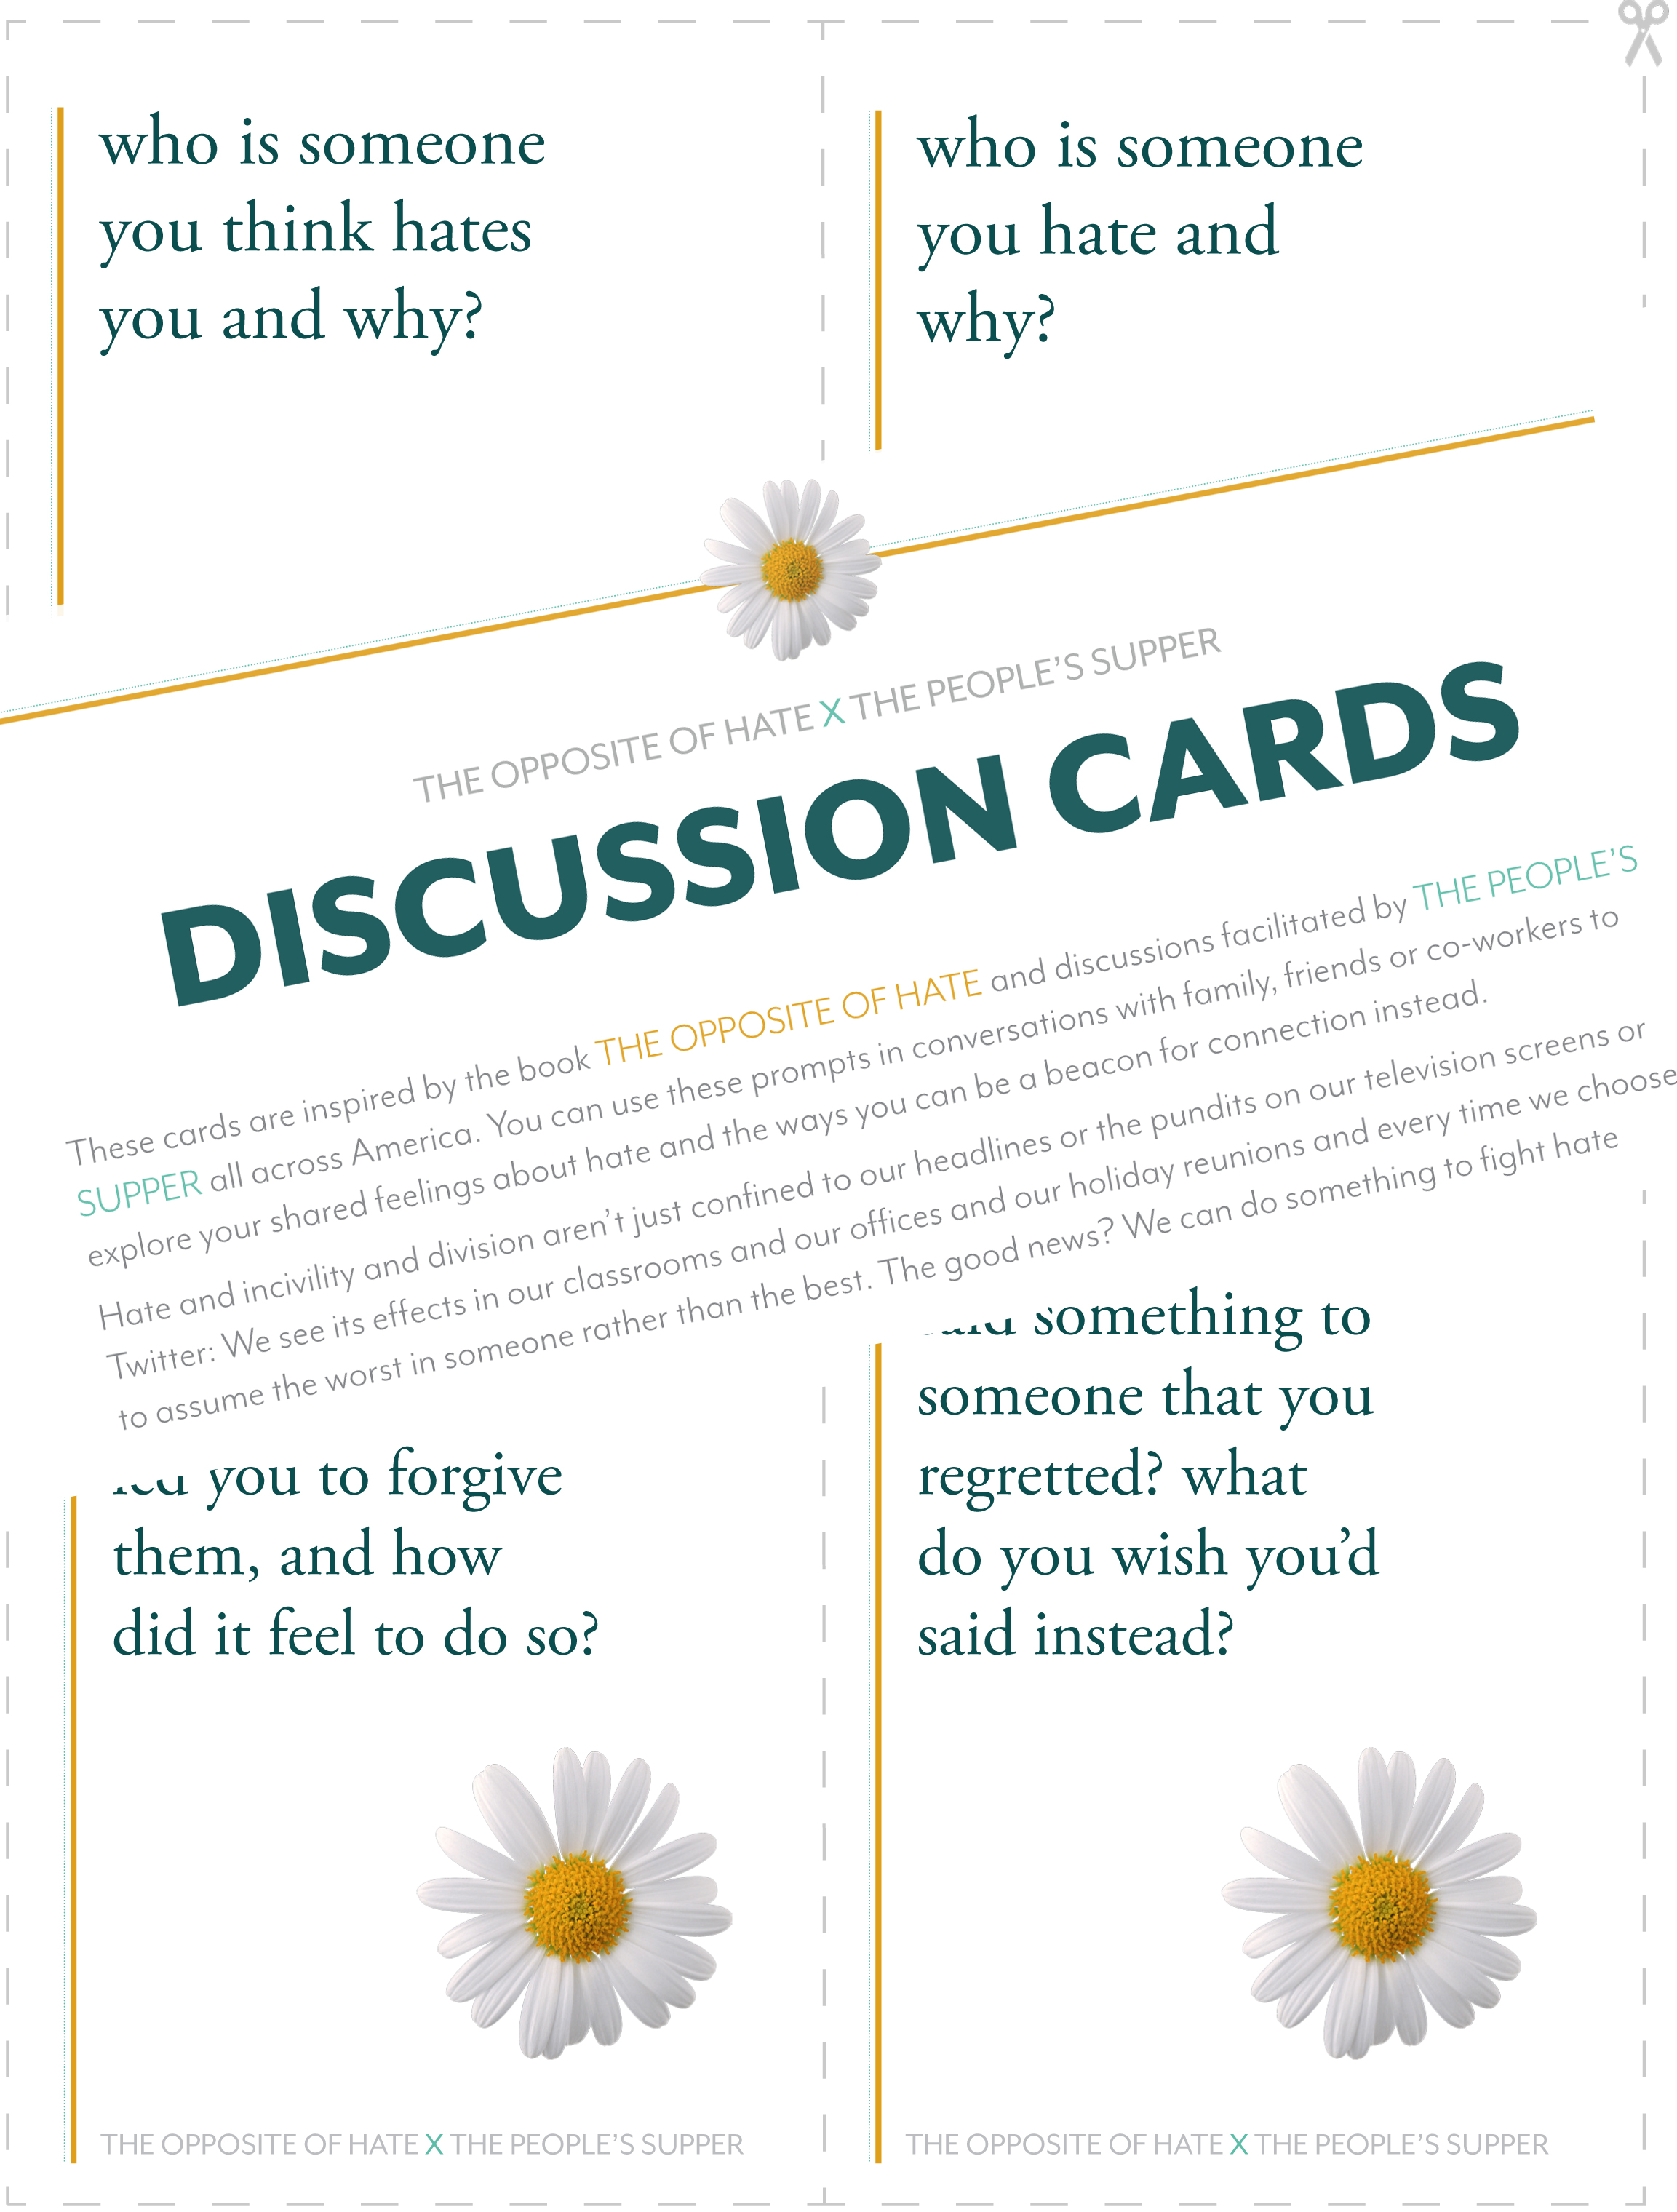 DiscussionCards_TheOppositeofHate_TPS-3.jpg